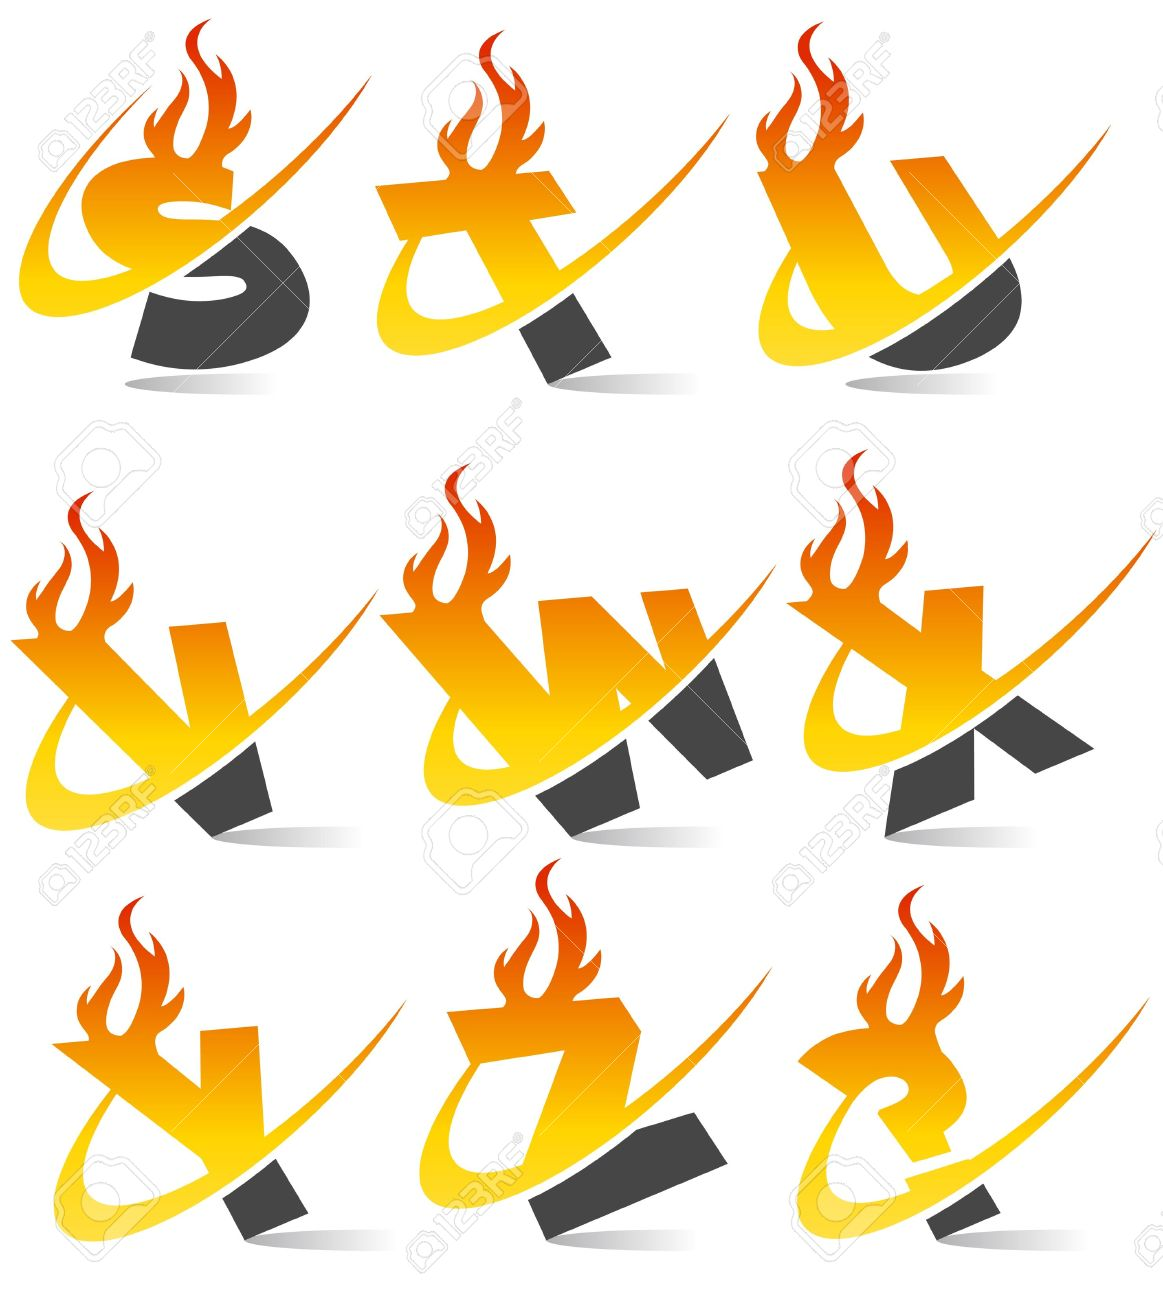 Clipart flaming letters png royalty free download Swoosh Flame Alphabet Royalty Free Cliparts, Vectors, And Stock ... png royalty free download